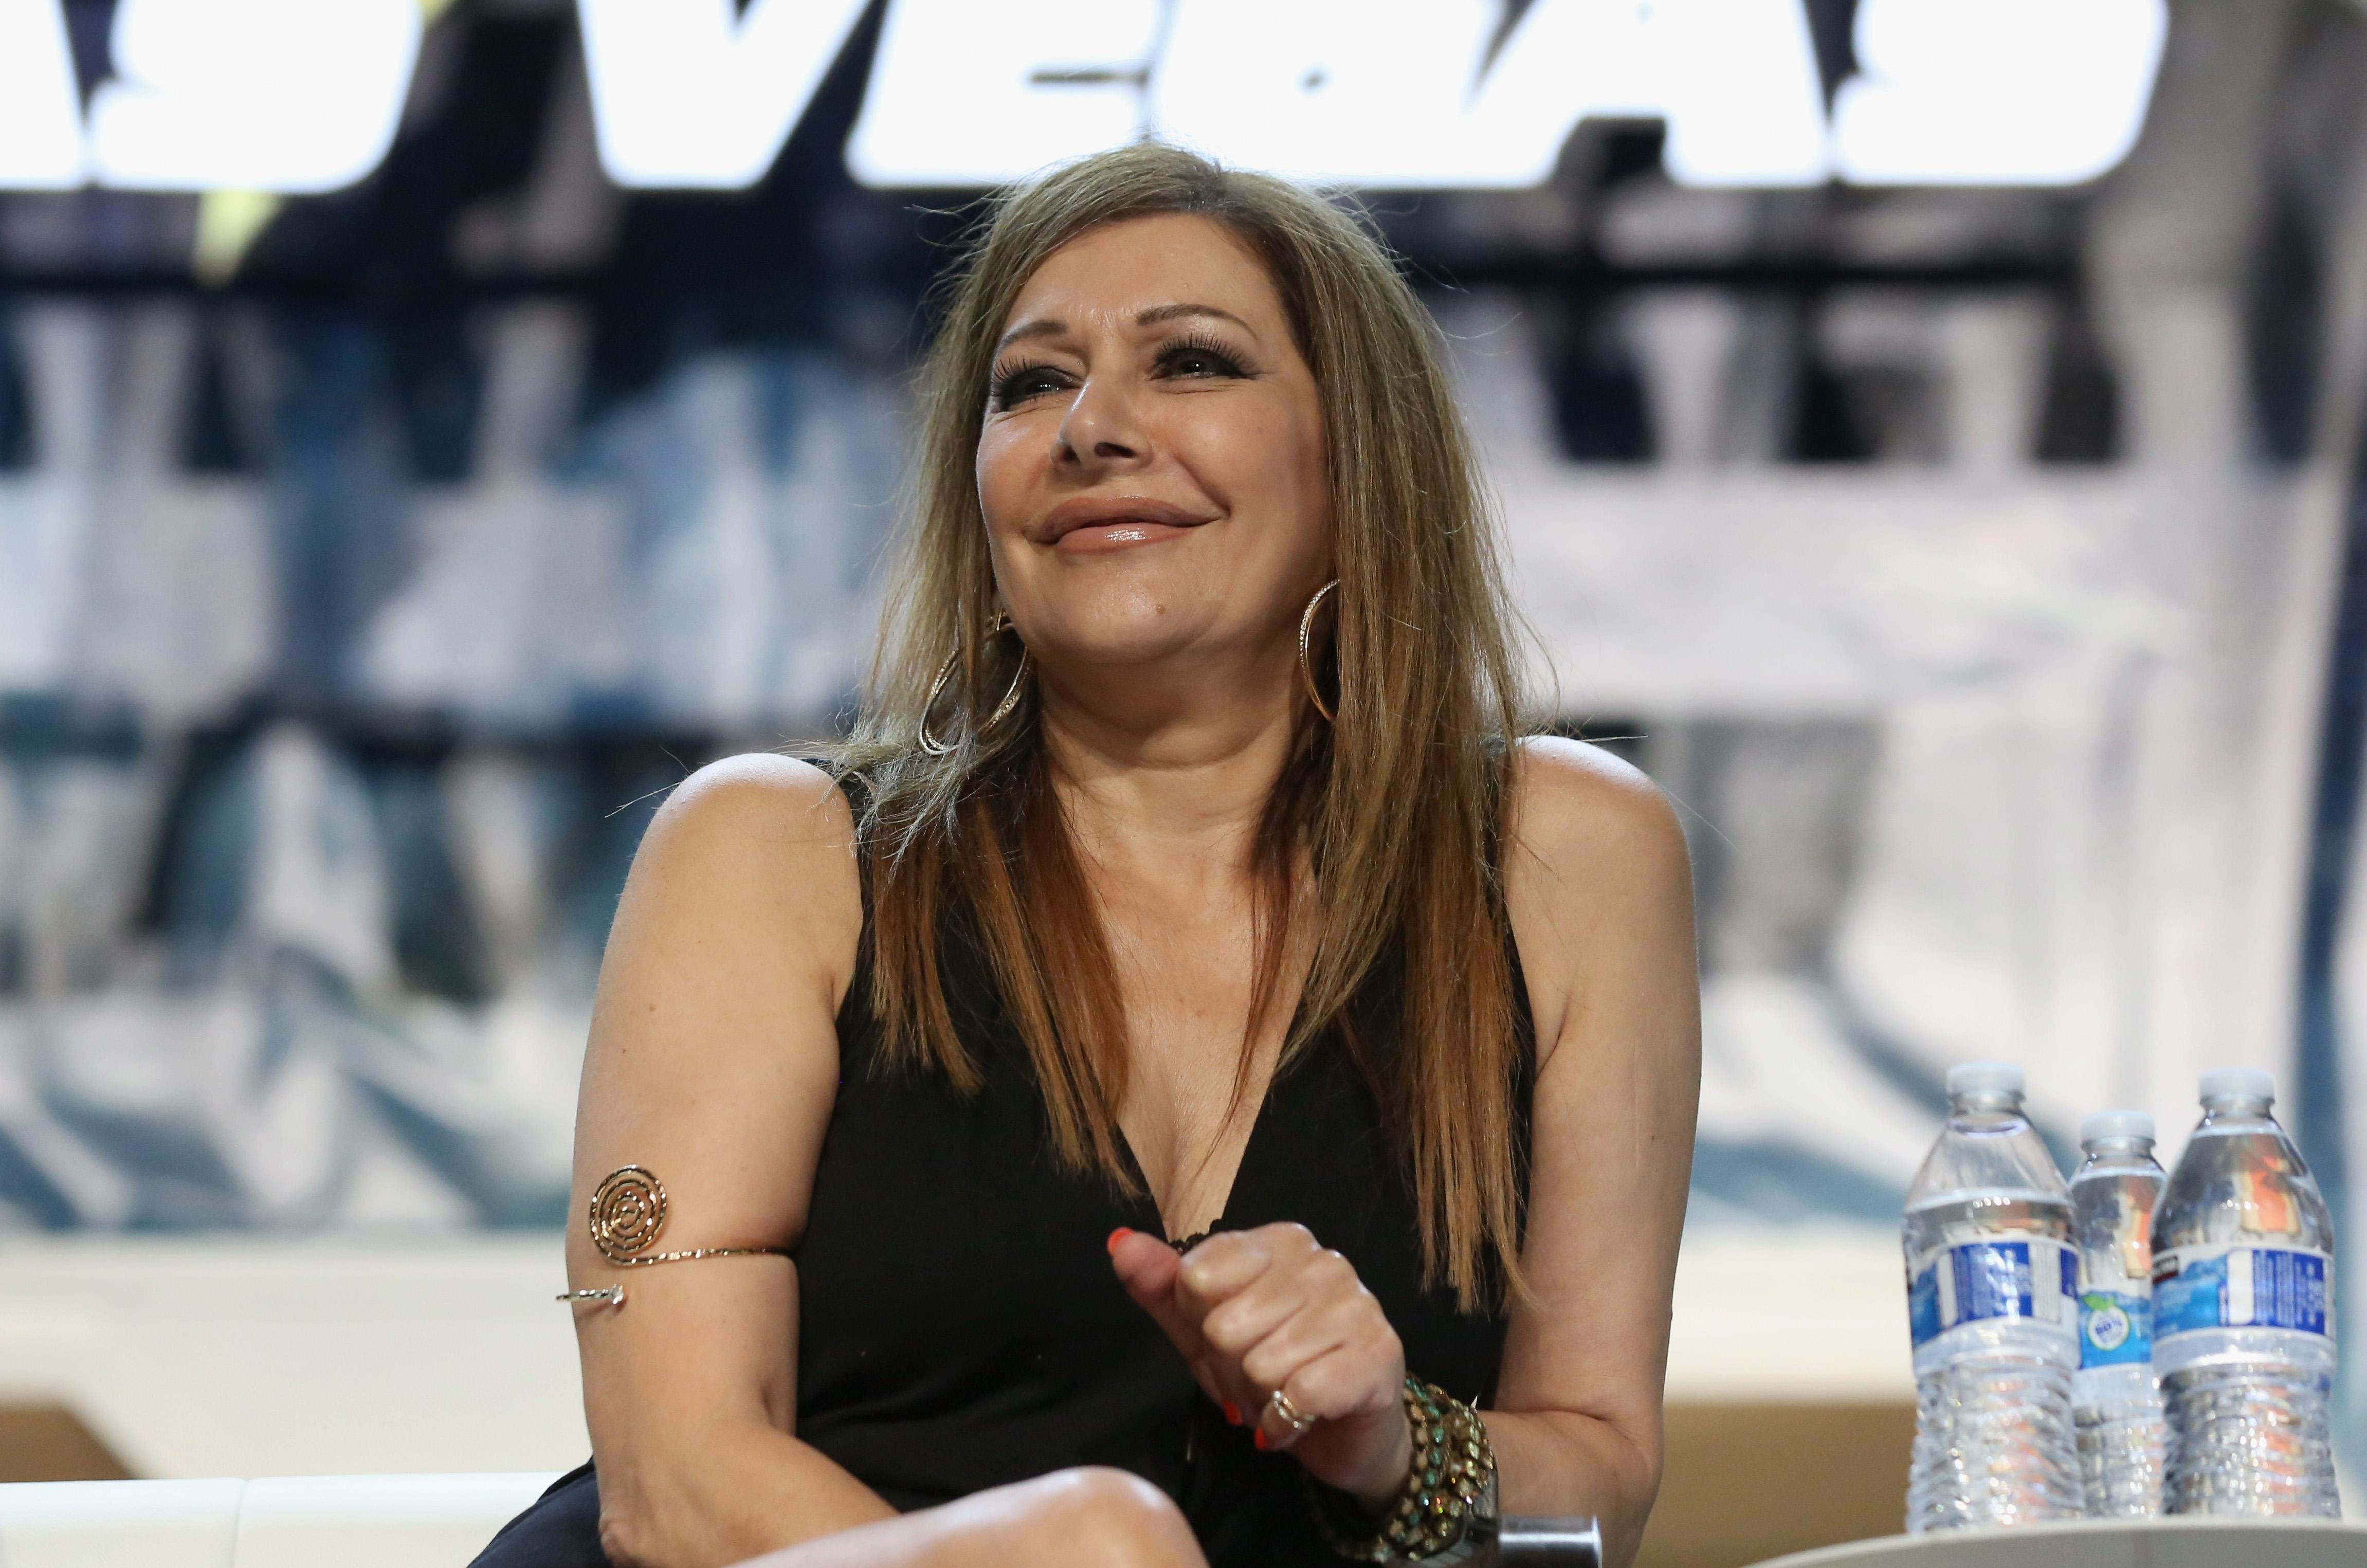 'Star Trek' actress Marina Sirtis reveals she was molested at age 3 by her babysitter's teen sons